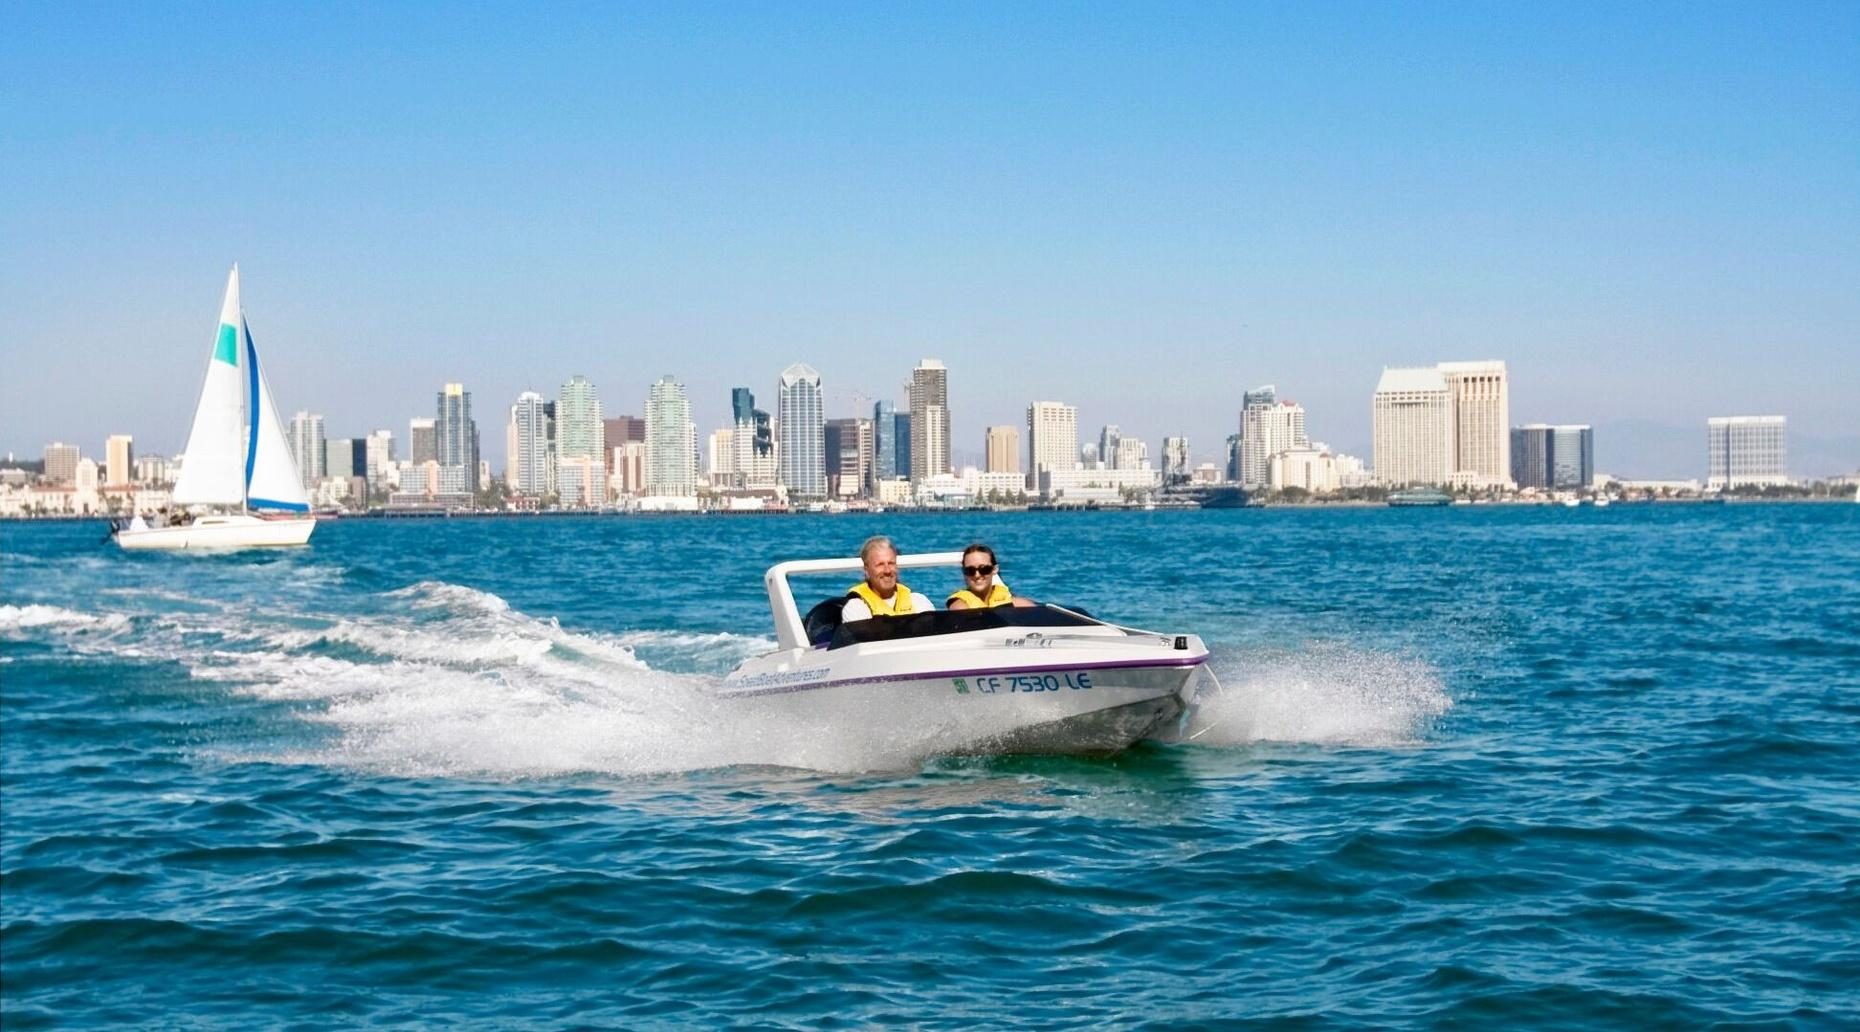 San Diego Speed Boat Adventure Tour